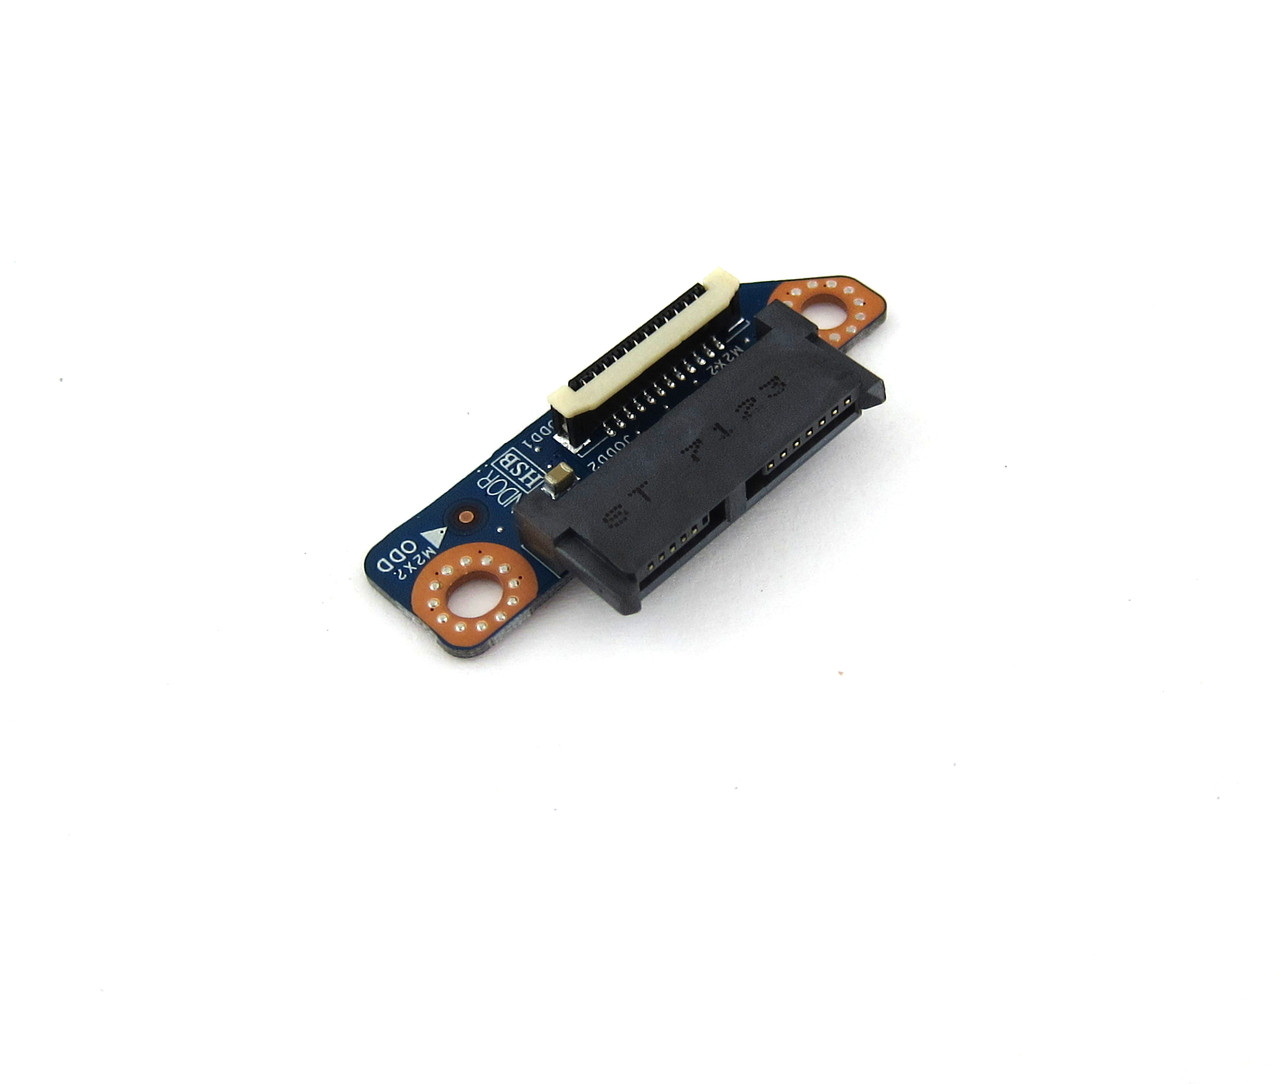 Dell Inspiron 15 5567 Optical Drive Connector Board - FMJXC